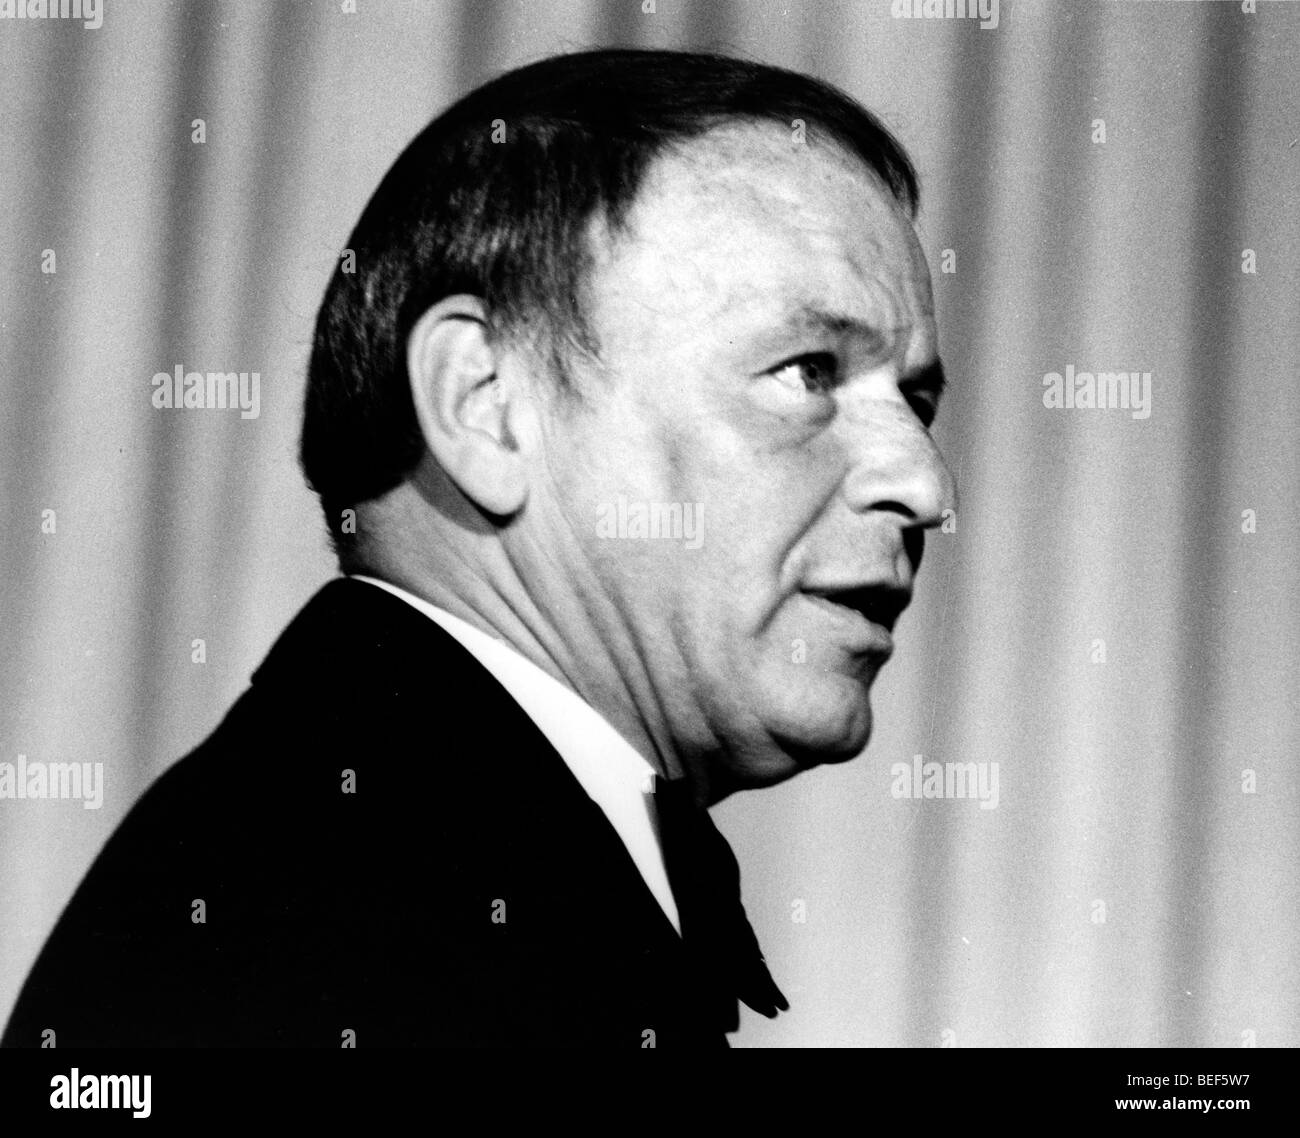 Singer FRANK SINATRA in the late 1970's Stock Photo